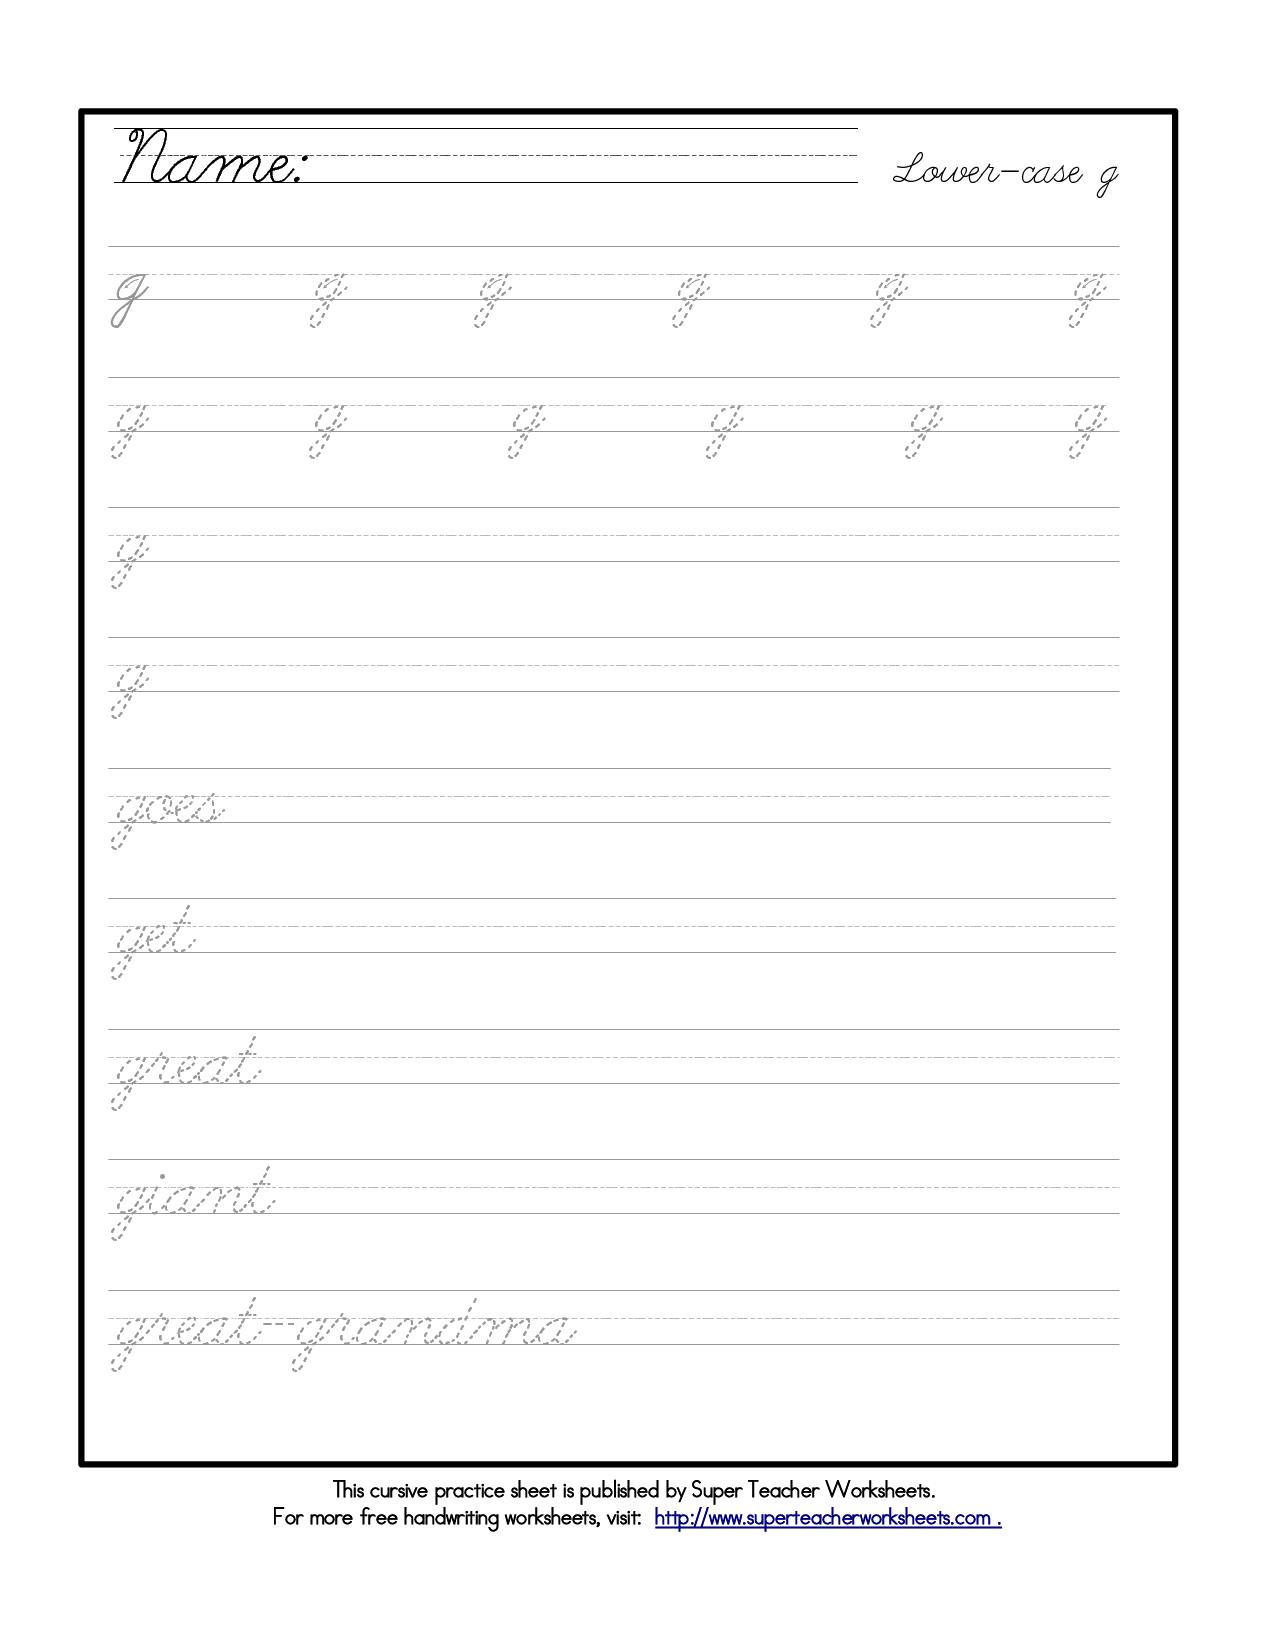 Cursive Handwriting Worksheets For 2nd Graders